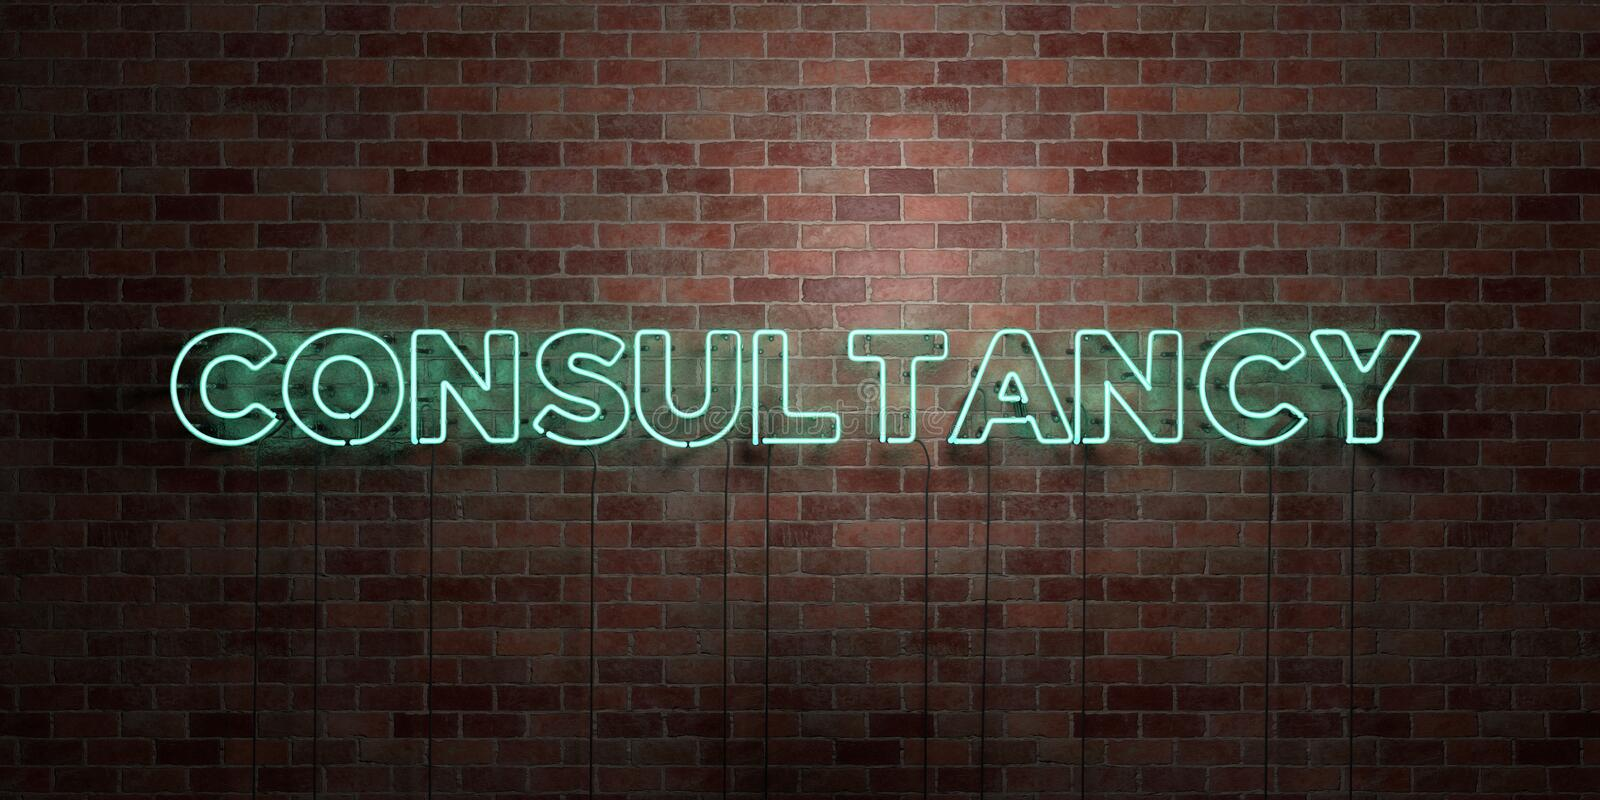 CONSULTANCY - fluorescent Neon tube Sign on brickwork - Front view - 3D rendered royalty free stock picture. Can be used for online banner ads and direct vector illustration